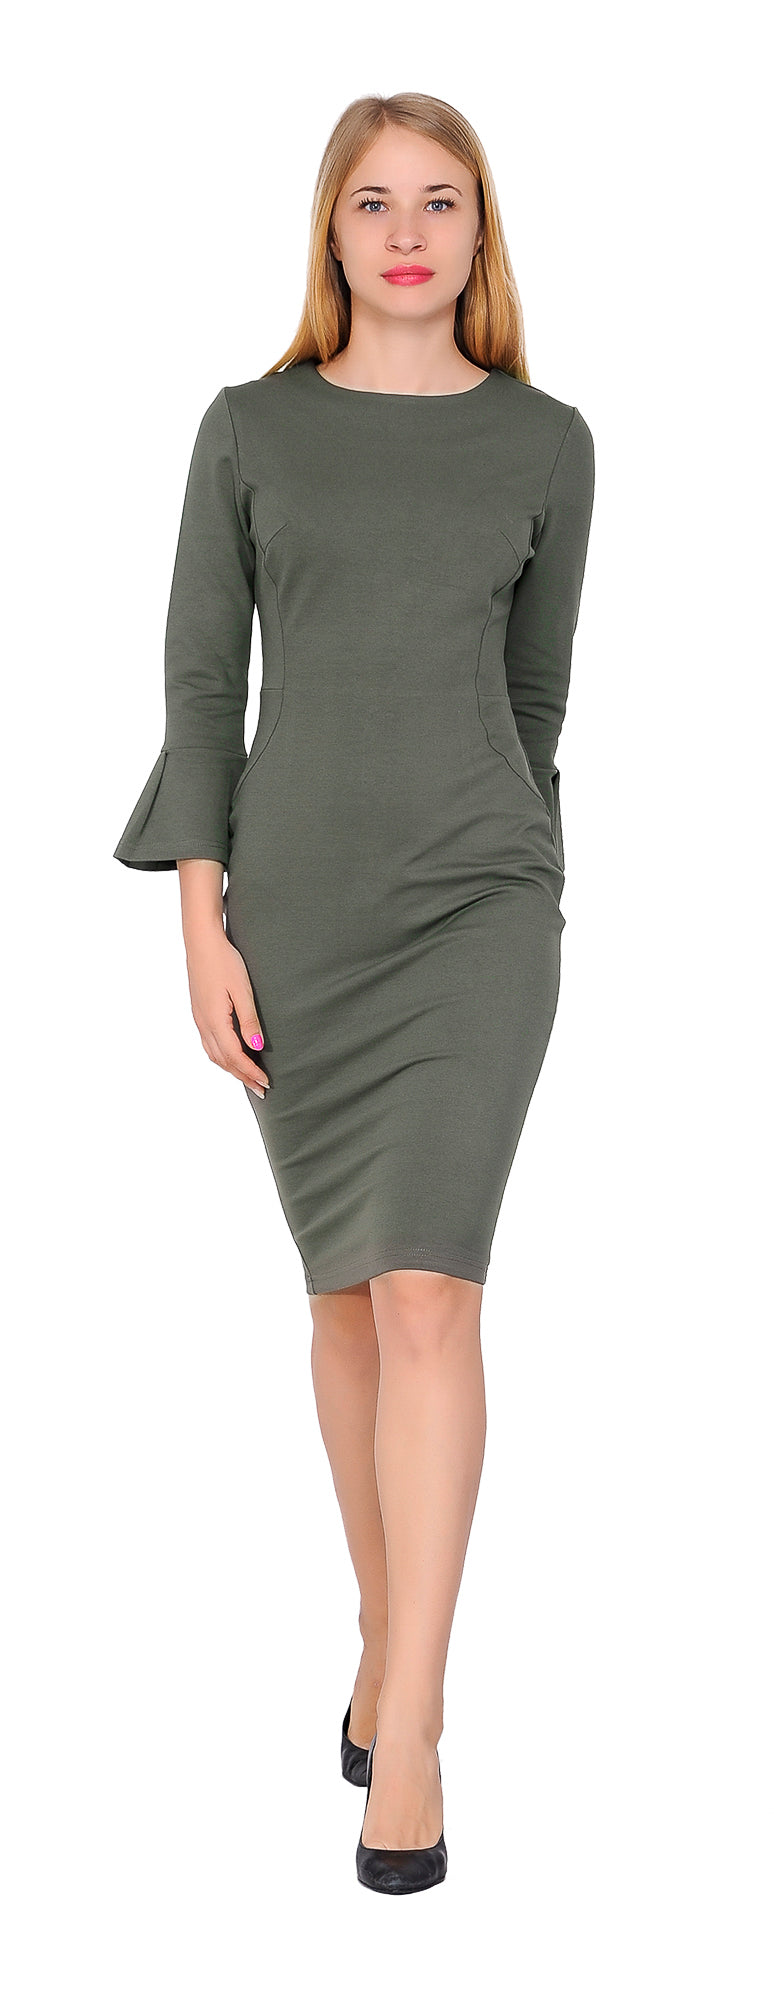 Womens Flounce Flare Sleeve Pencil Dress formal Cocktail Party ...